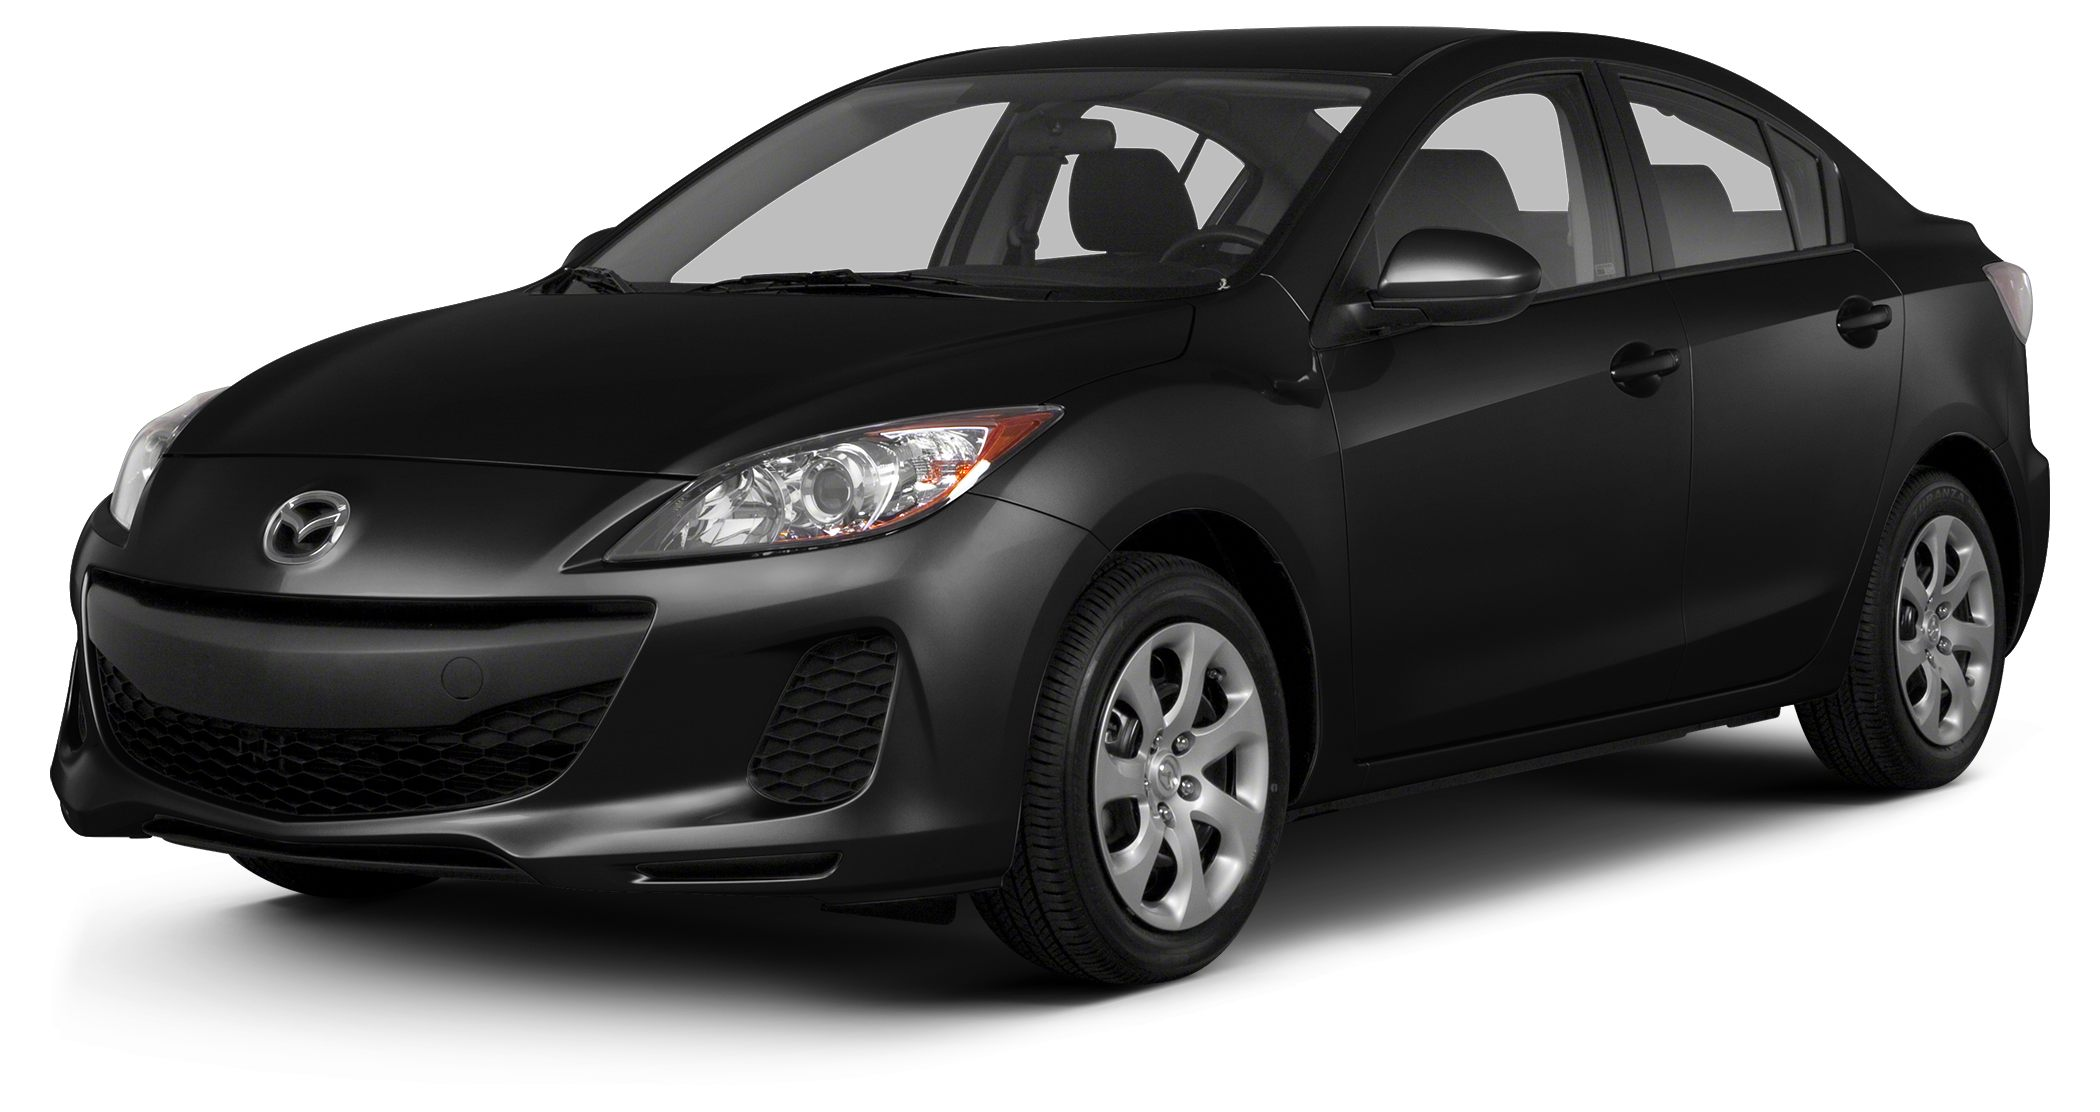 2013 Mazda MAZDA3 i SV WE SELL OUR VEHICLES AT WHOLESALE PRICES AND STAND BEHIND OUR CARS  CO